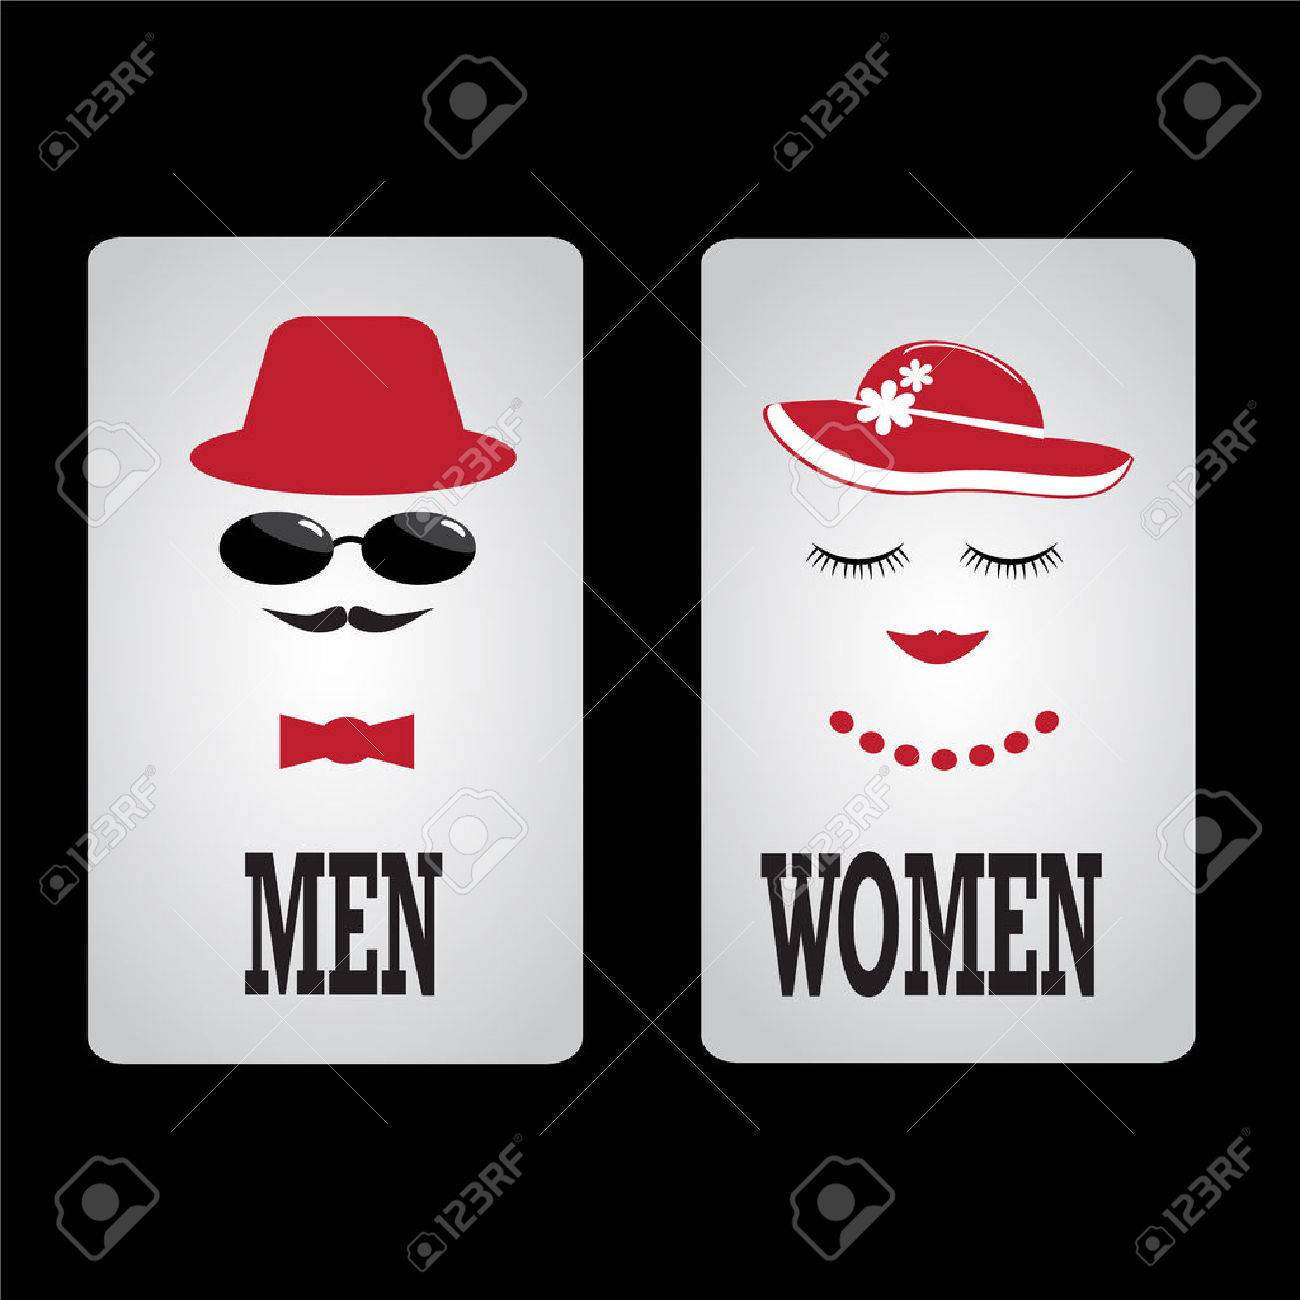 Toilet Sign, Fitting room sign flat icon illustration - 51067771